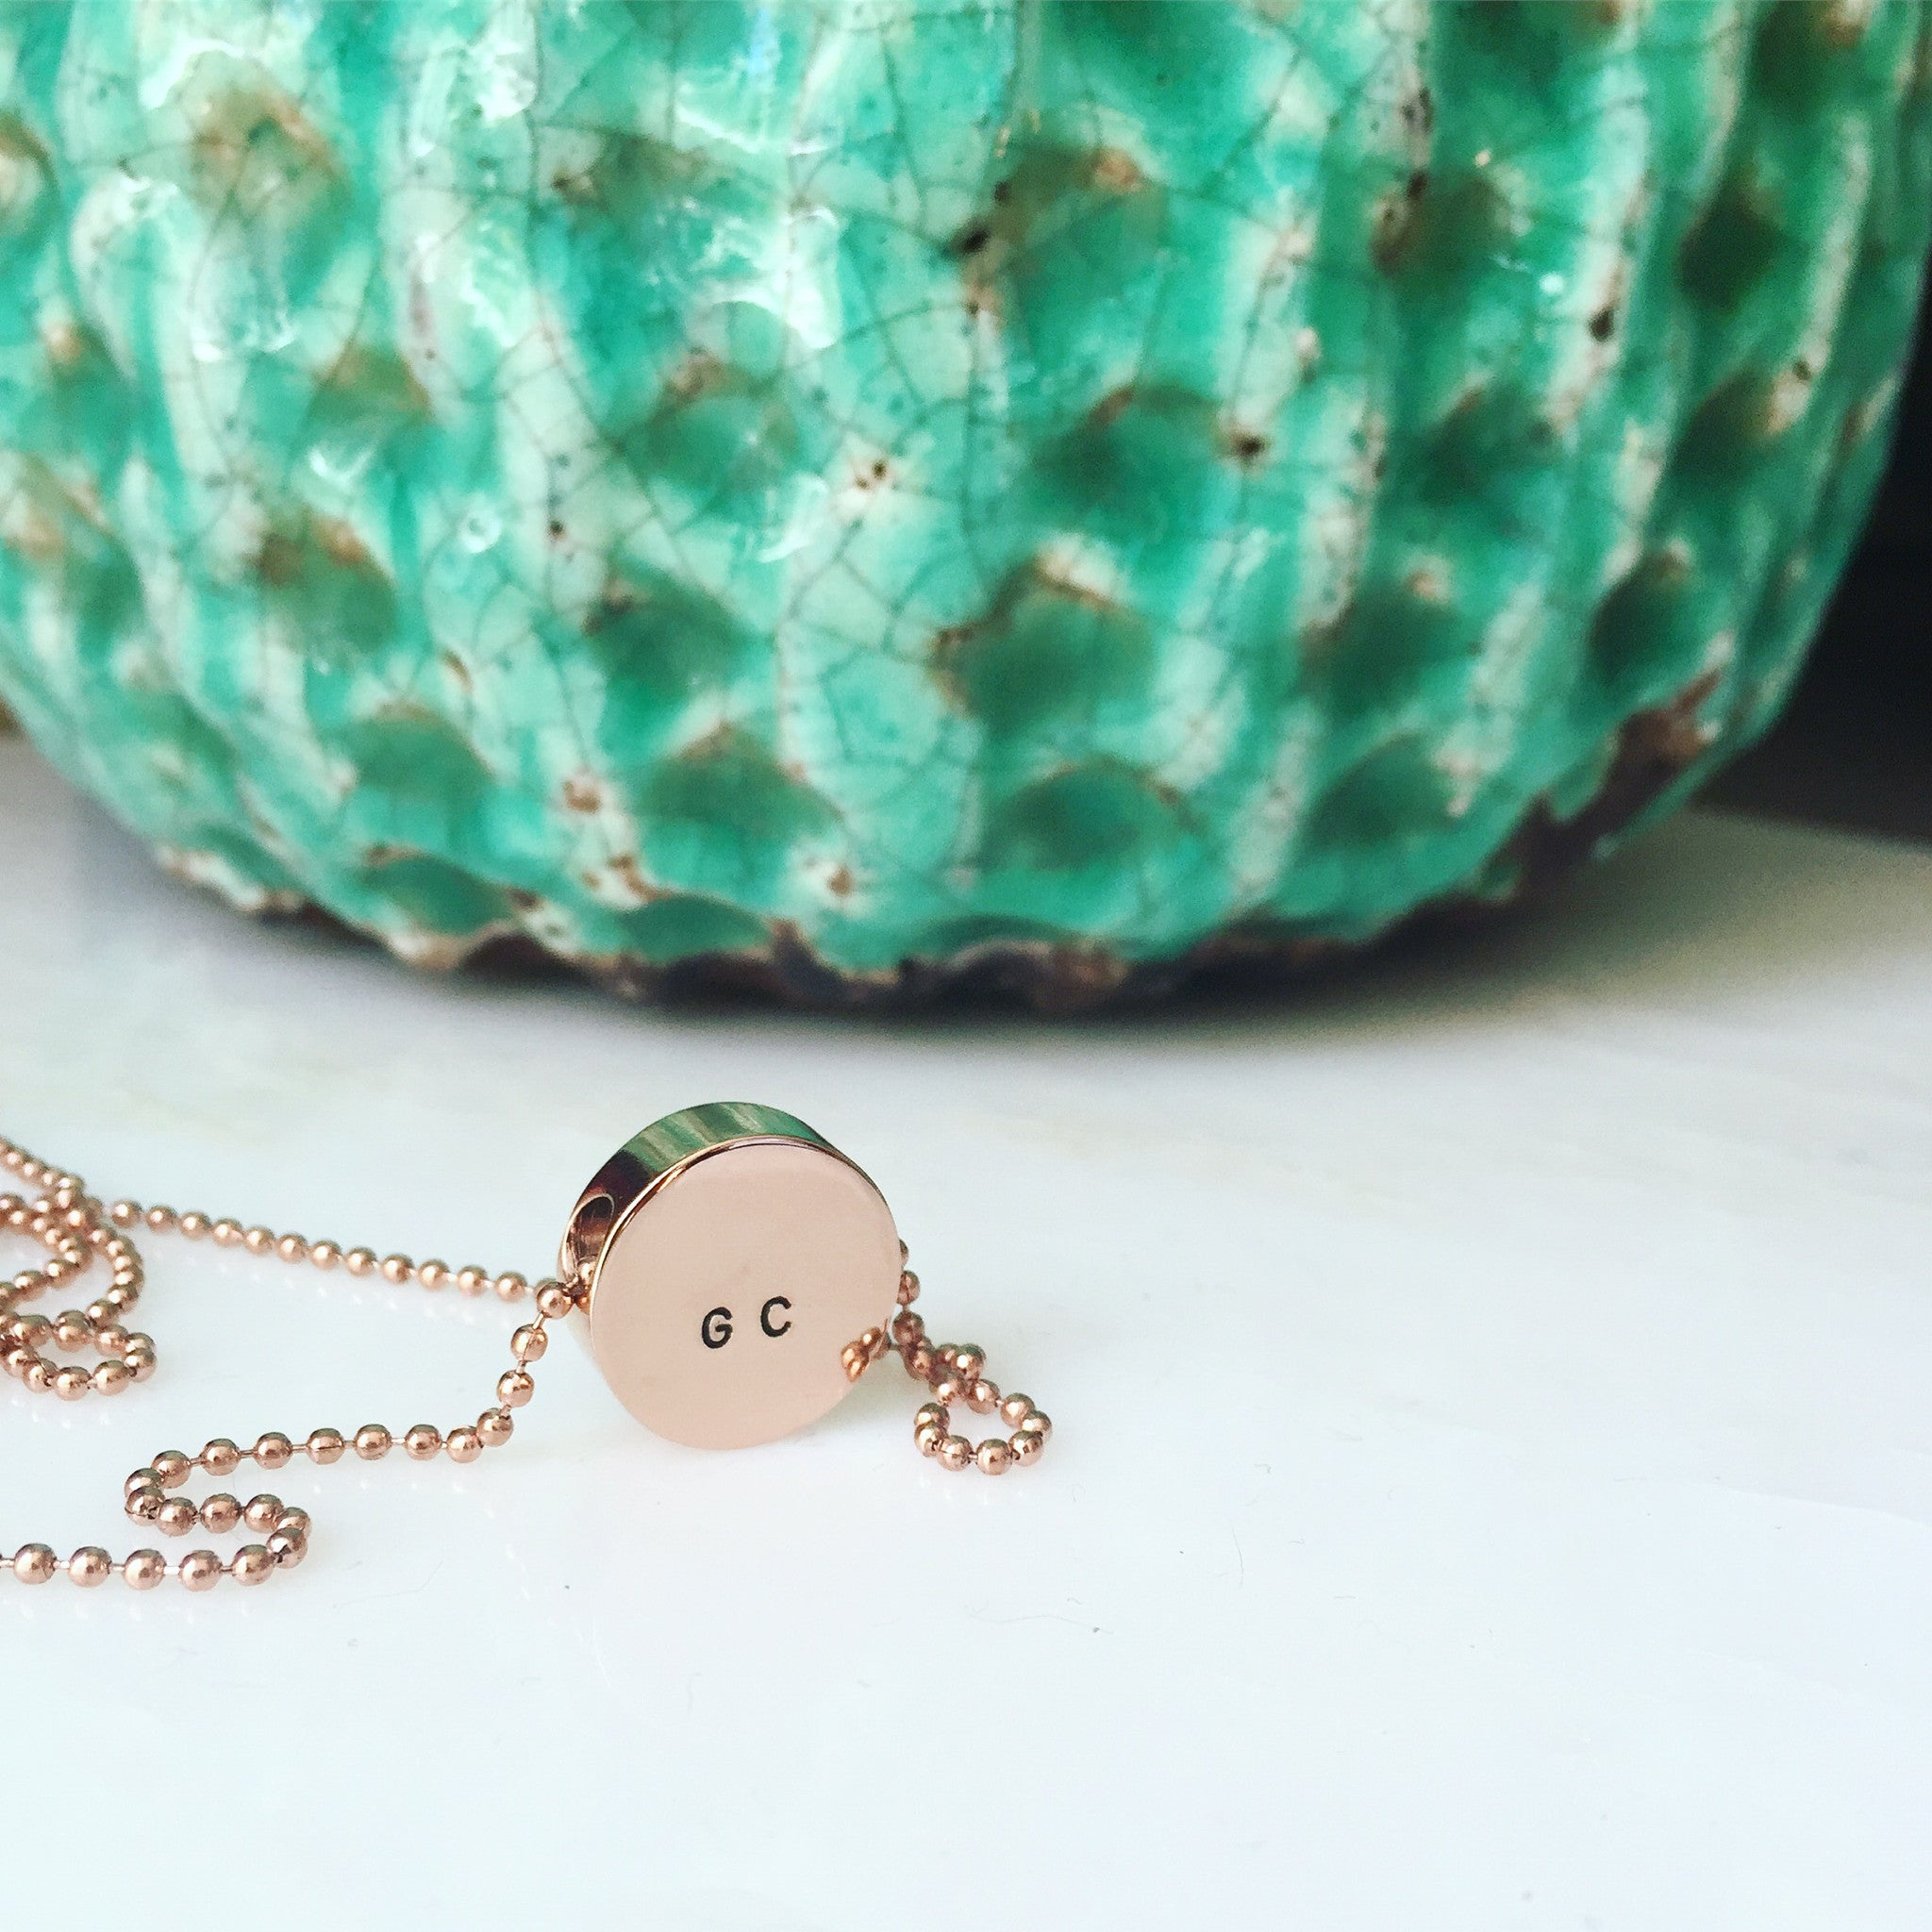 Initials Coin Pendant Necklace